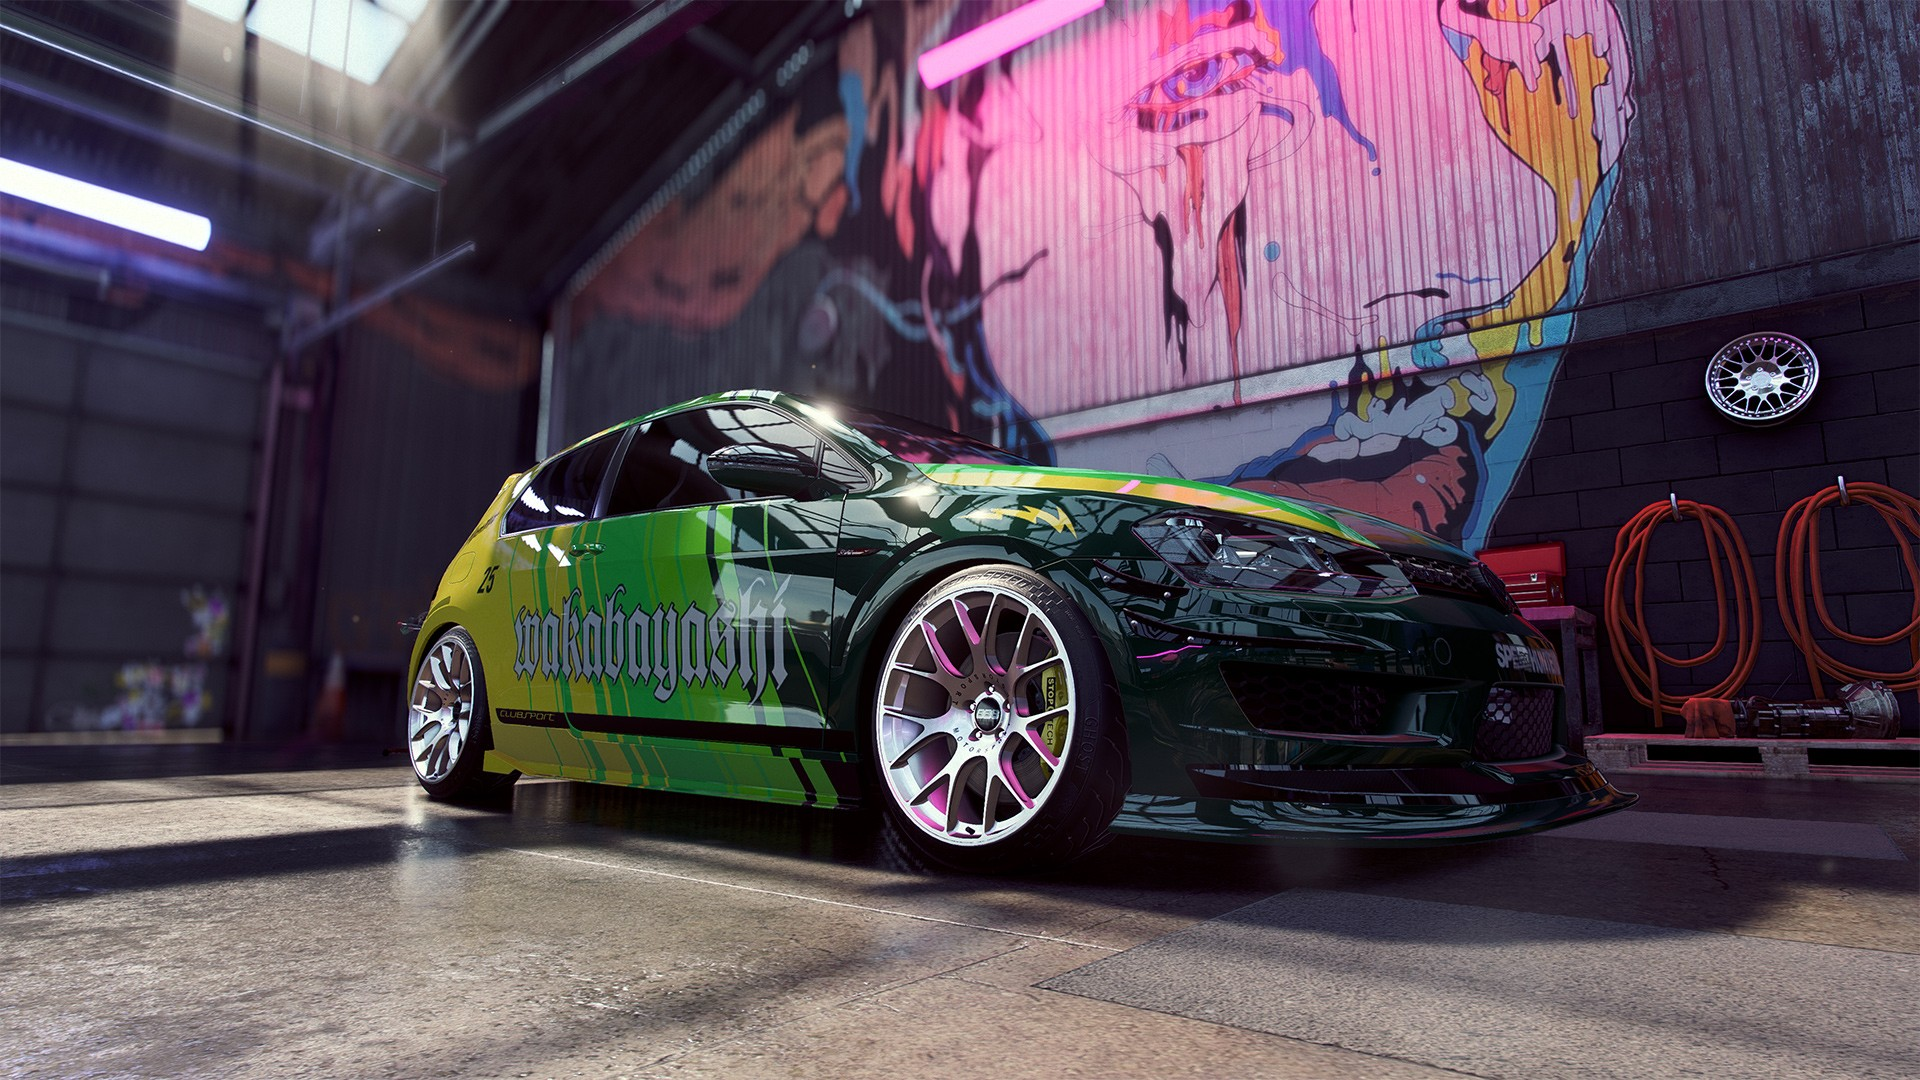 https://data2.origin.com/asset/content/dam/originx/web/app/games/need-for-speed/need-for-speed-heat/screenshots/NFS_1920x1080_Reveal_week_4_carcustomization_04_NoLogo.jpg/8ec1a44a-92ee-467c-942d-e3c72f0cc648/original.jpg